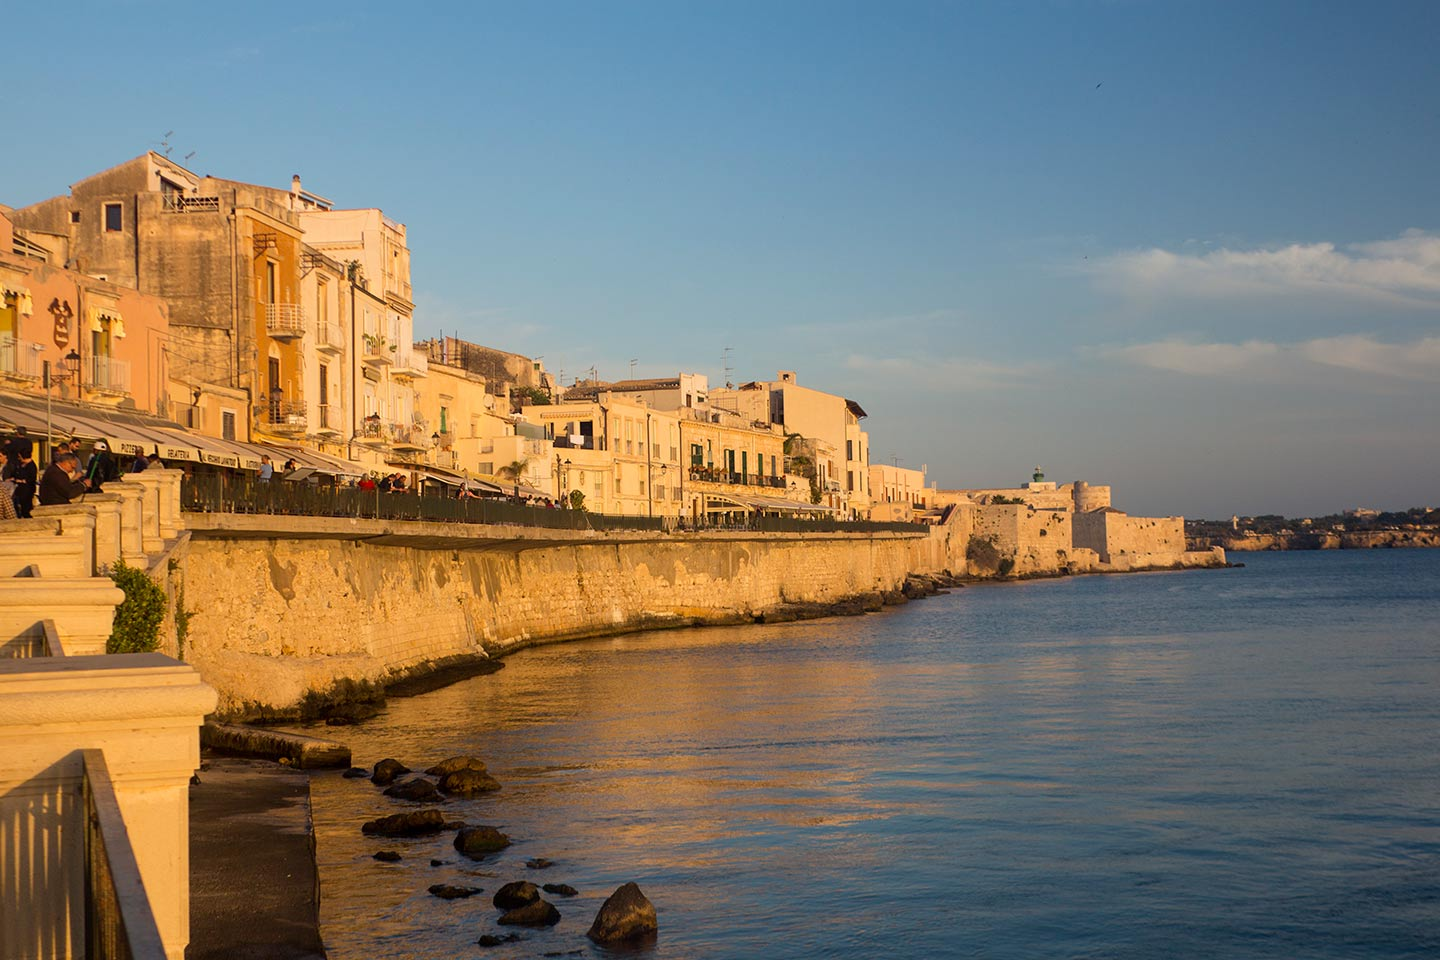 Image of the seafront or lungomare in Ortigia